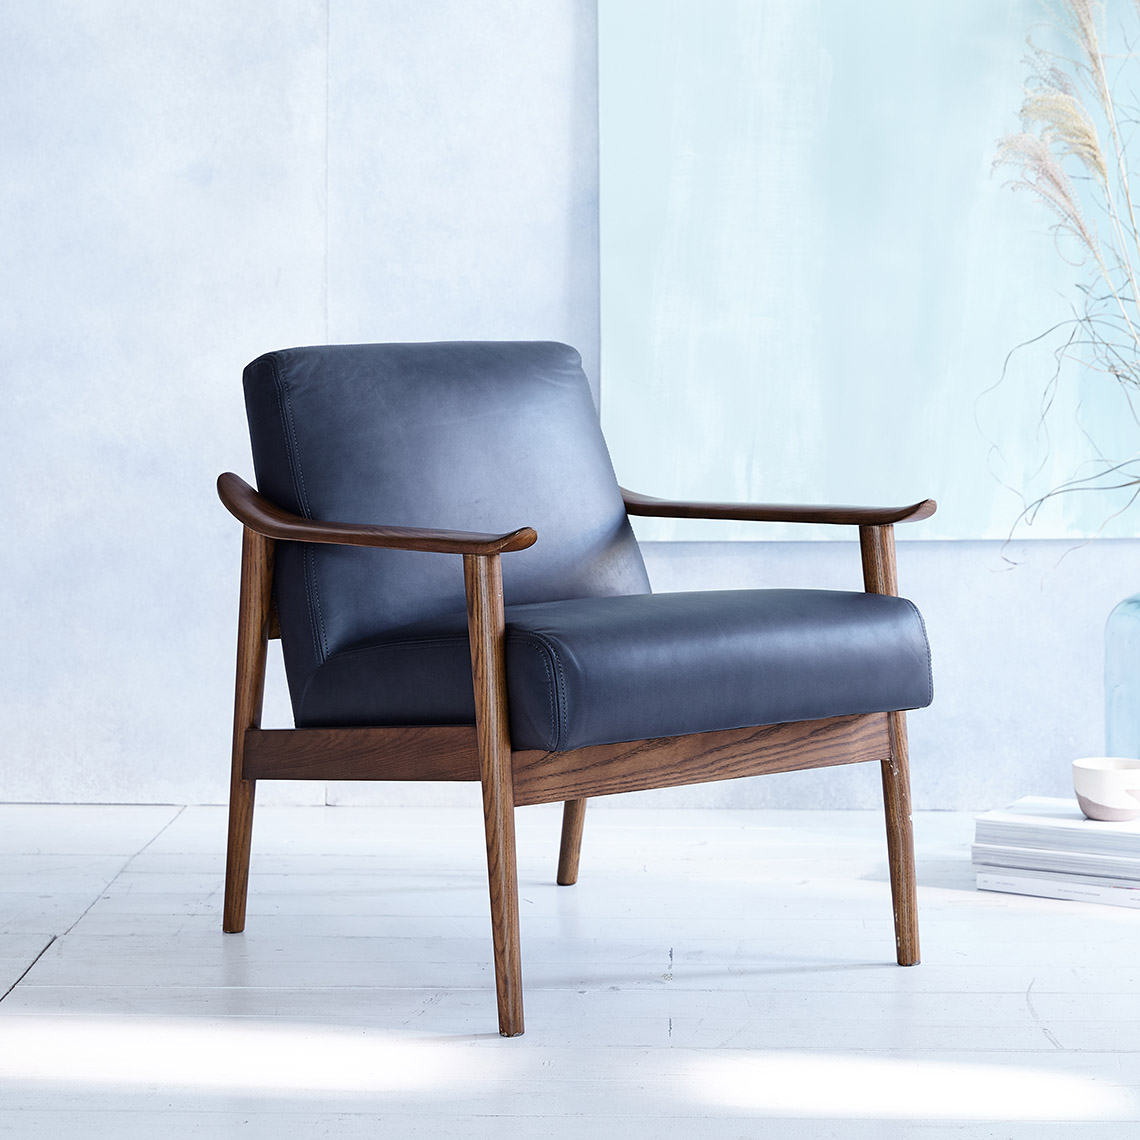 pip-mc-show-wood-leather-chair-agean-blue-leather-sp17-107